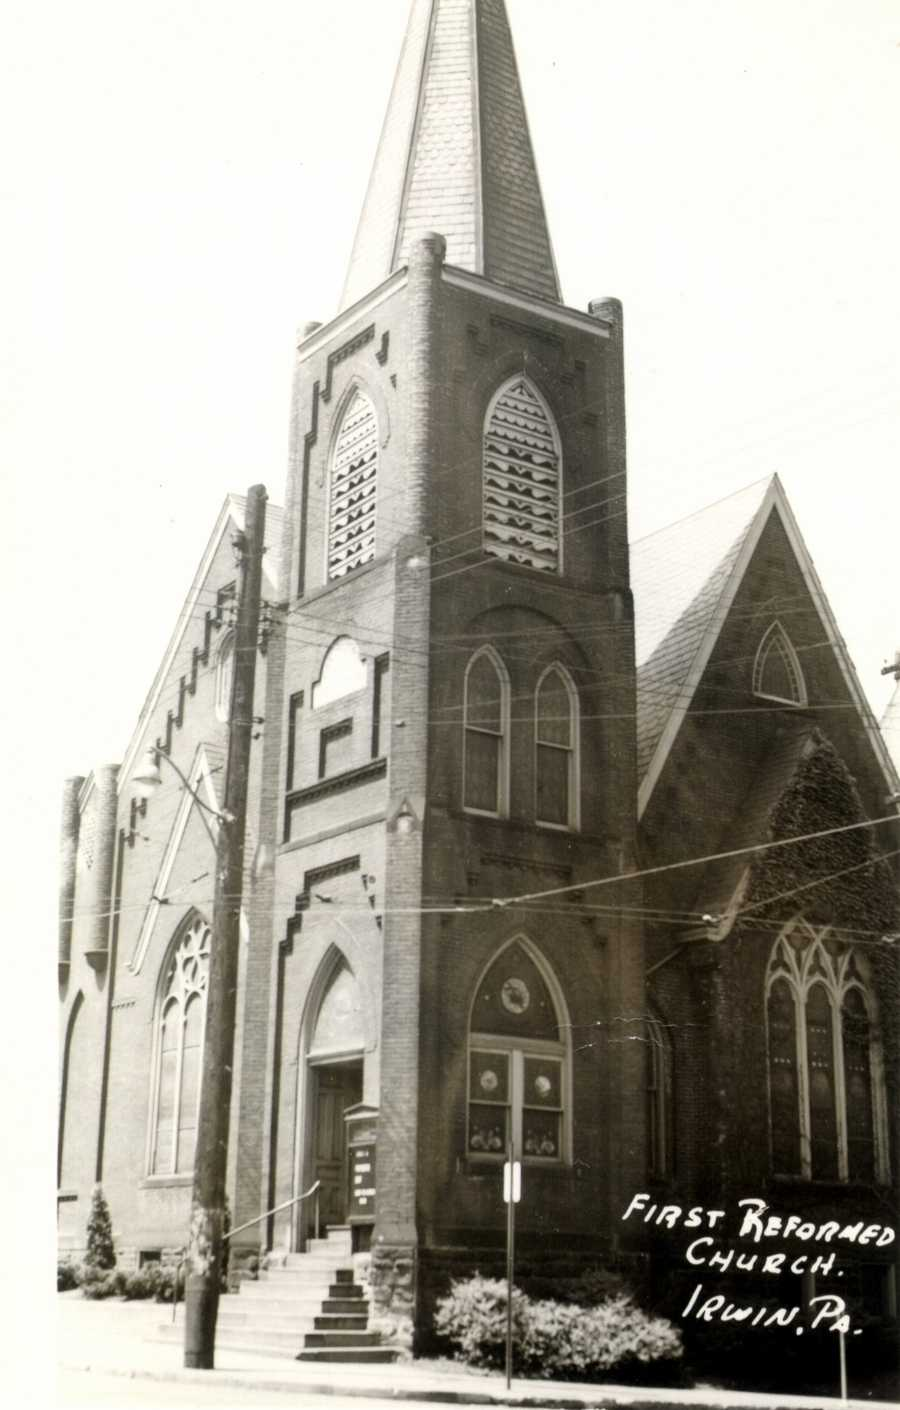 1954: First Reformed Church on Main and 4th Street in Irwin (now the First United Church of Christ)